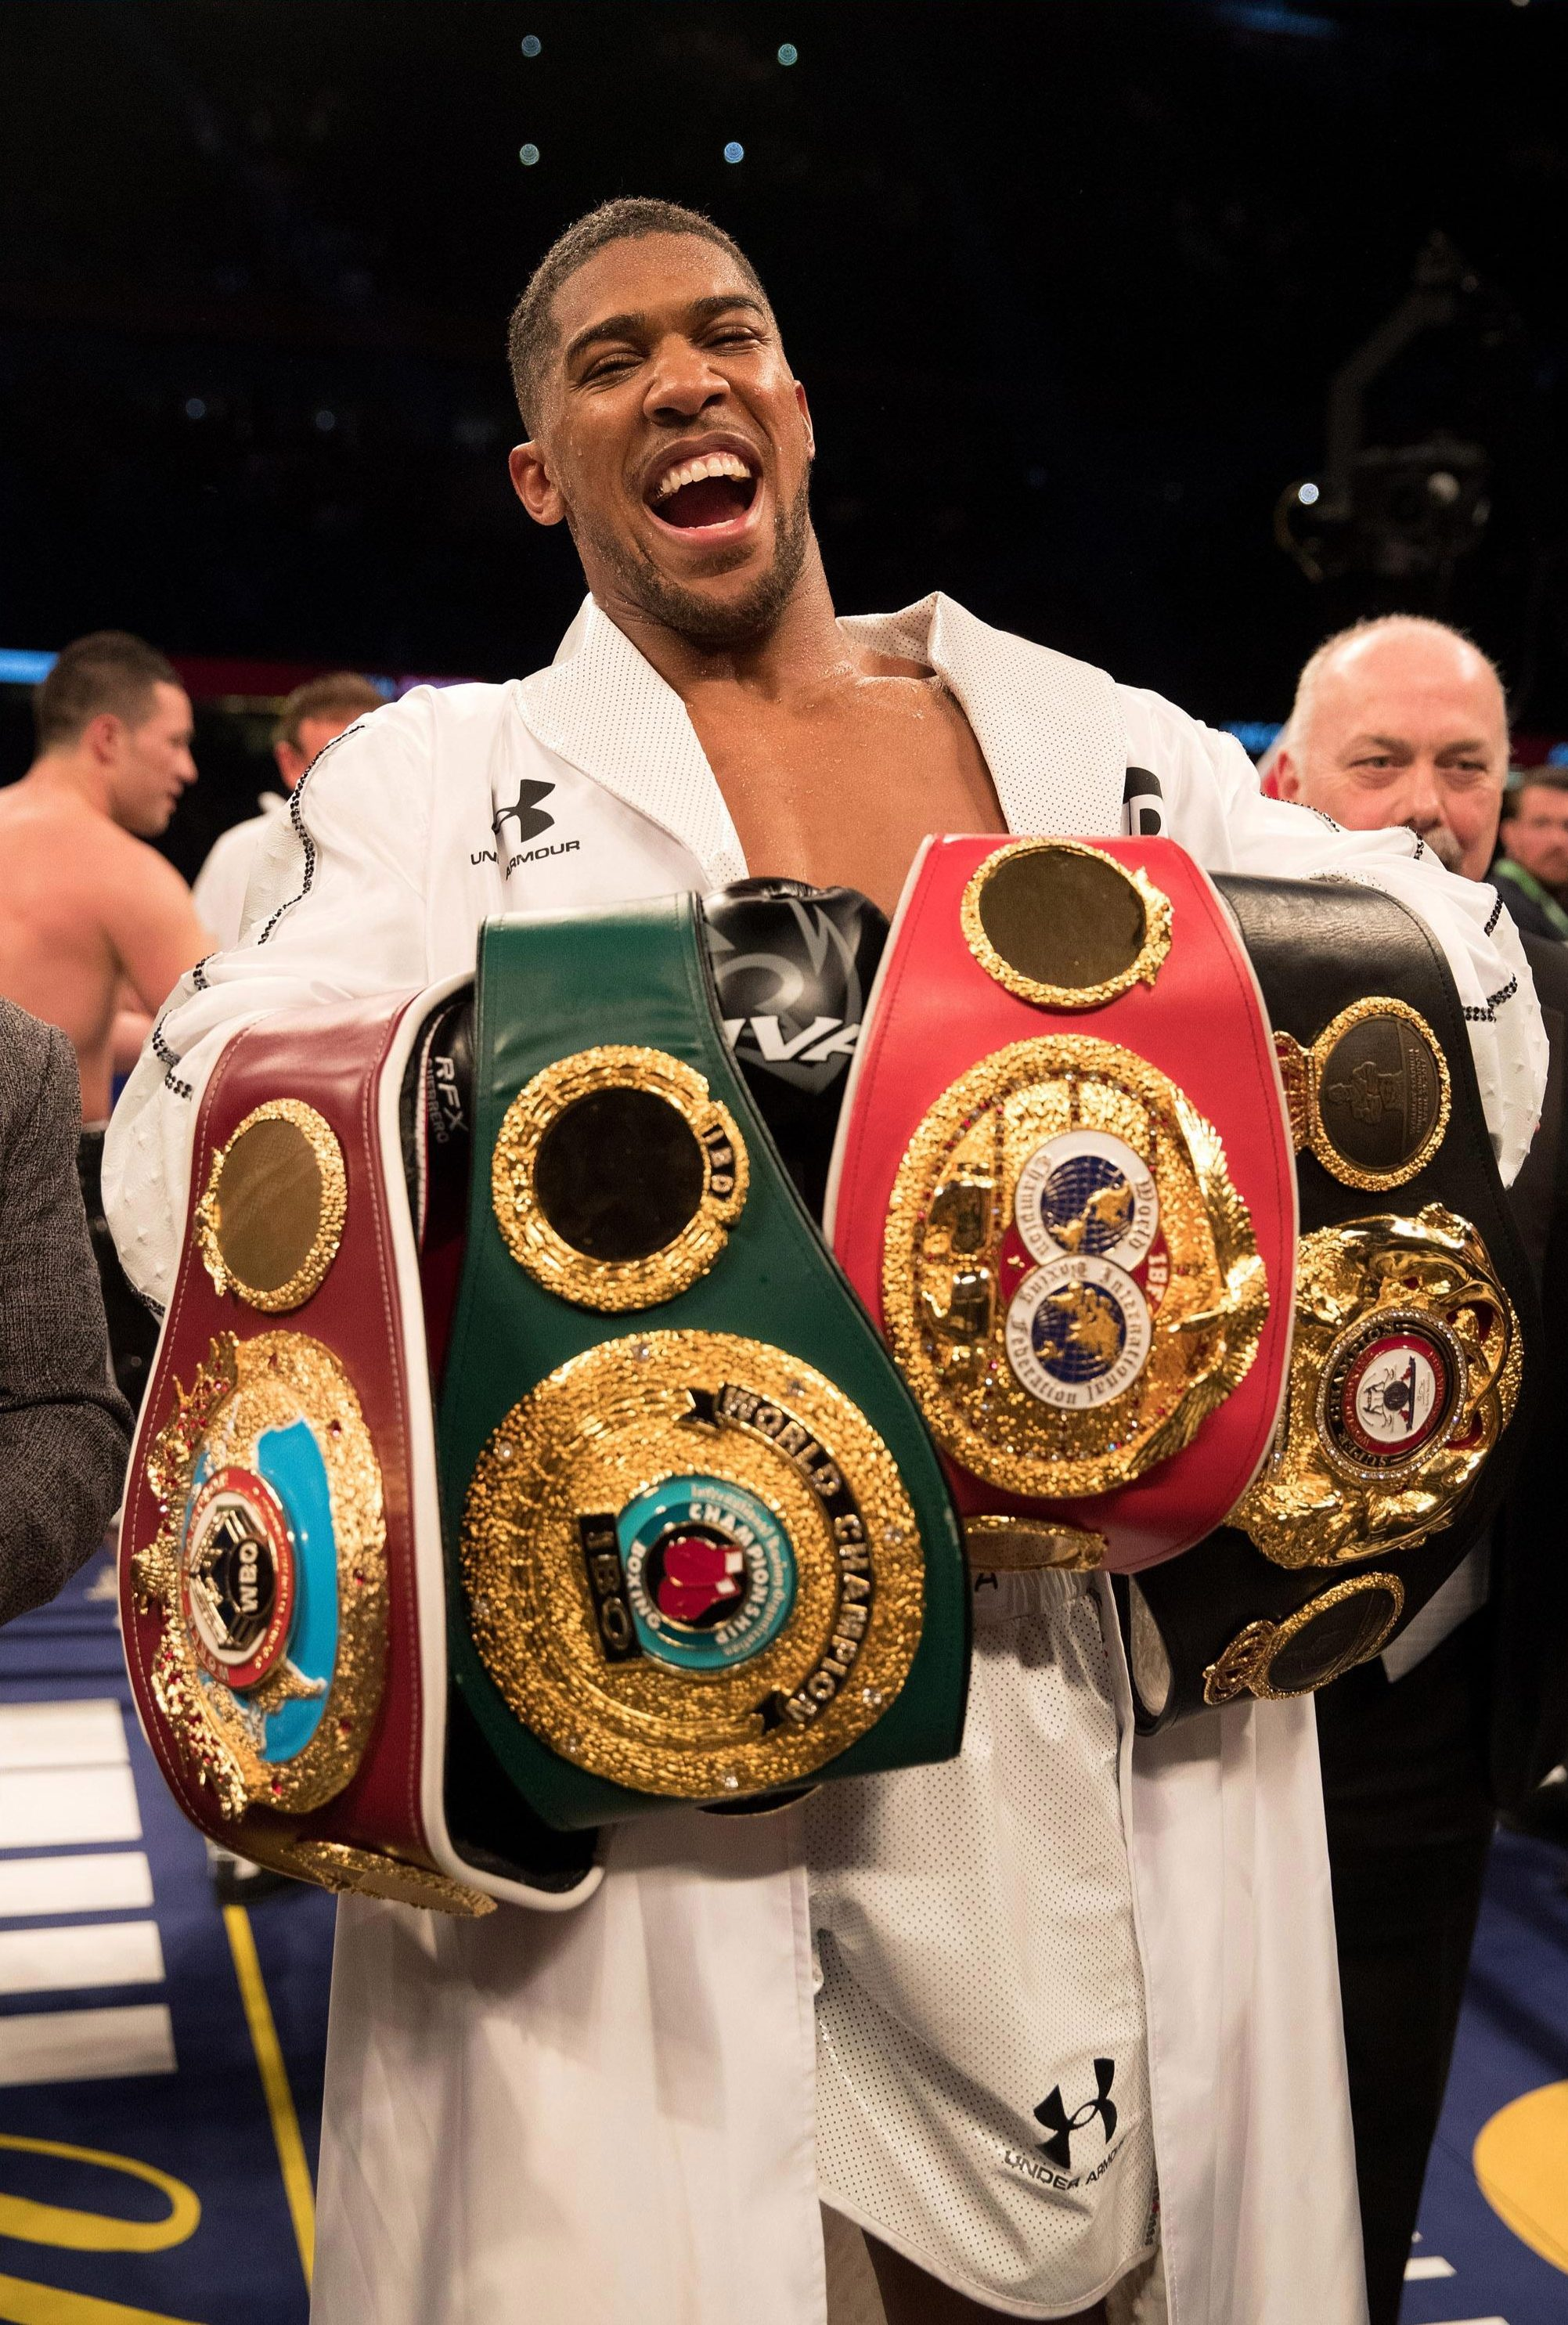 Anthony Joshua needs to beat Deontay Wilder to become the undisputed heavyweight champion of the world